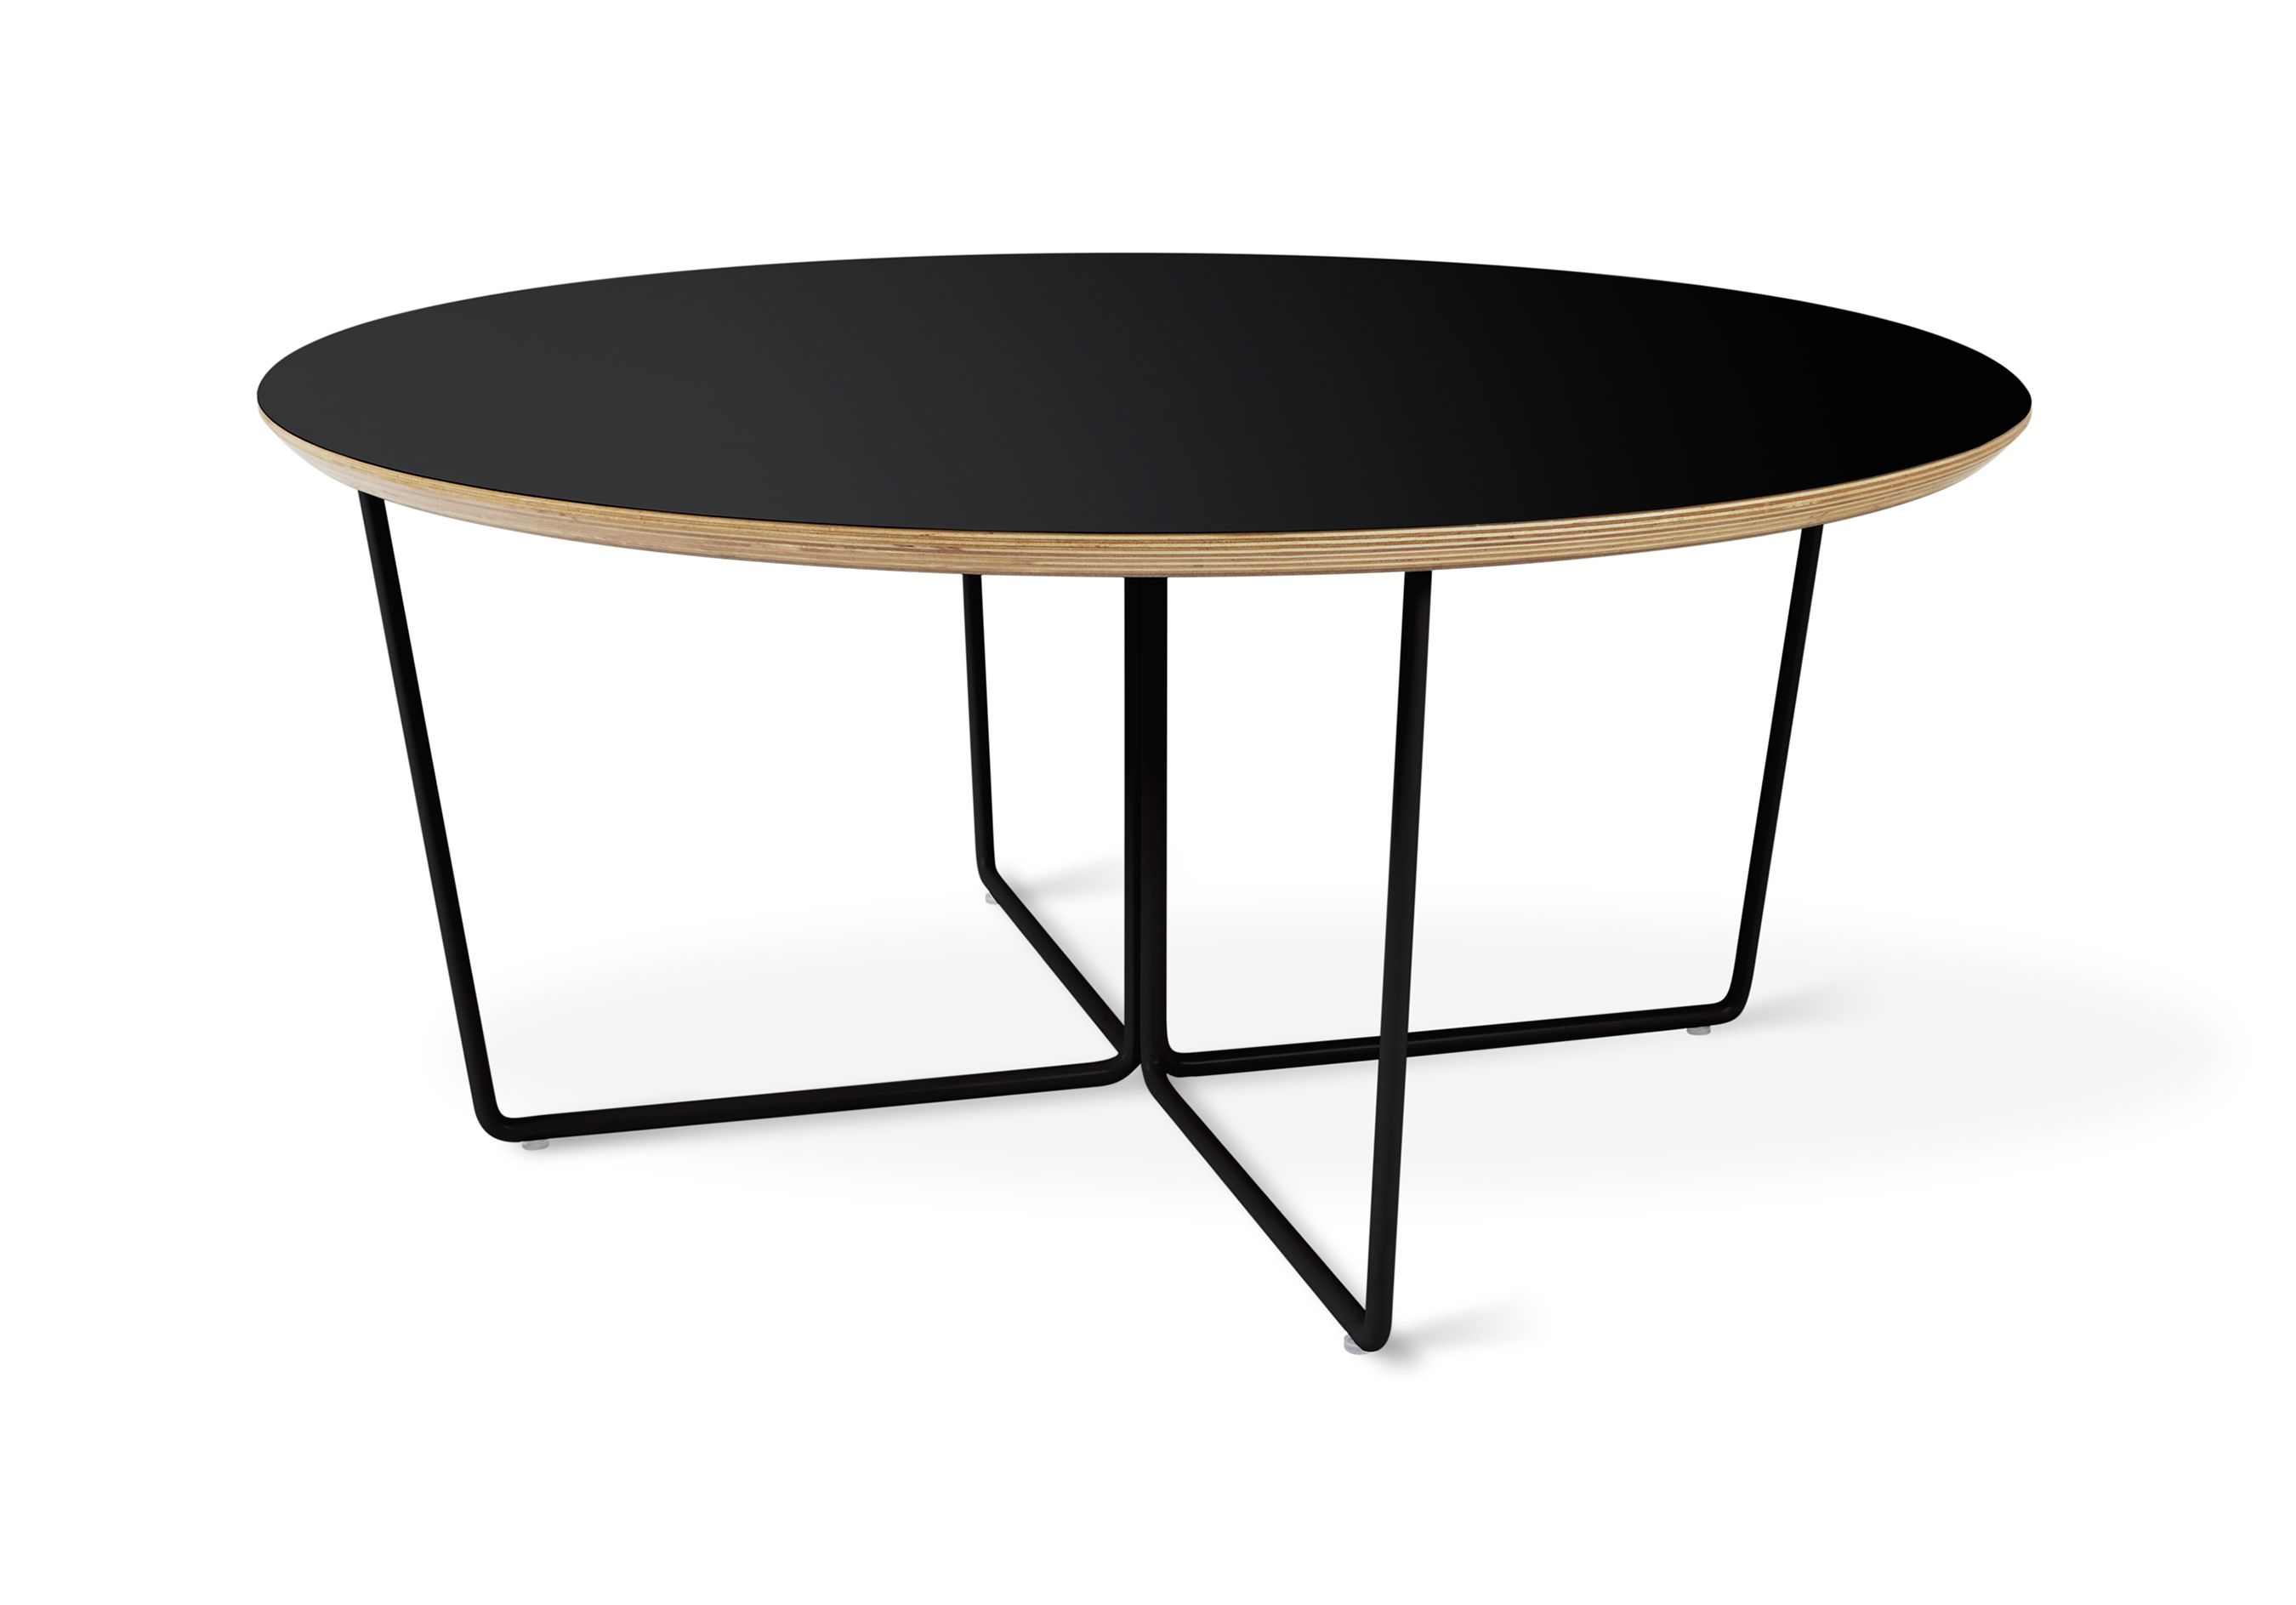 Array Coffee Table Round Black The Array Coffee Table Features - Geometric base coffee table